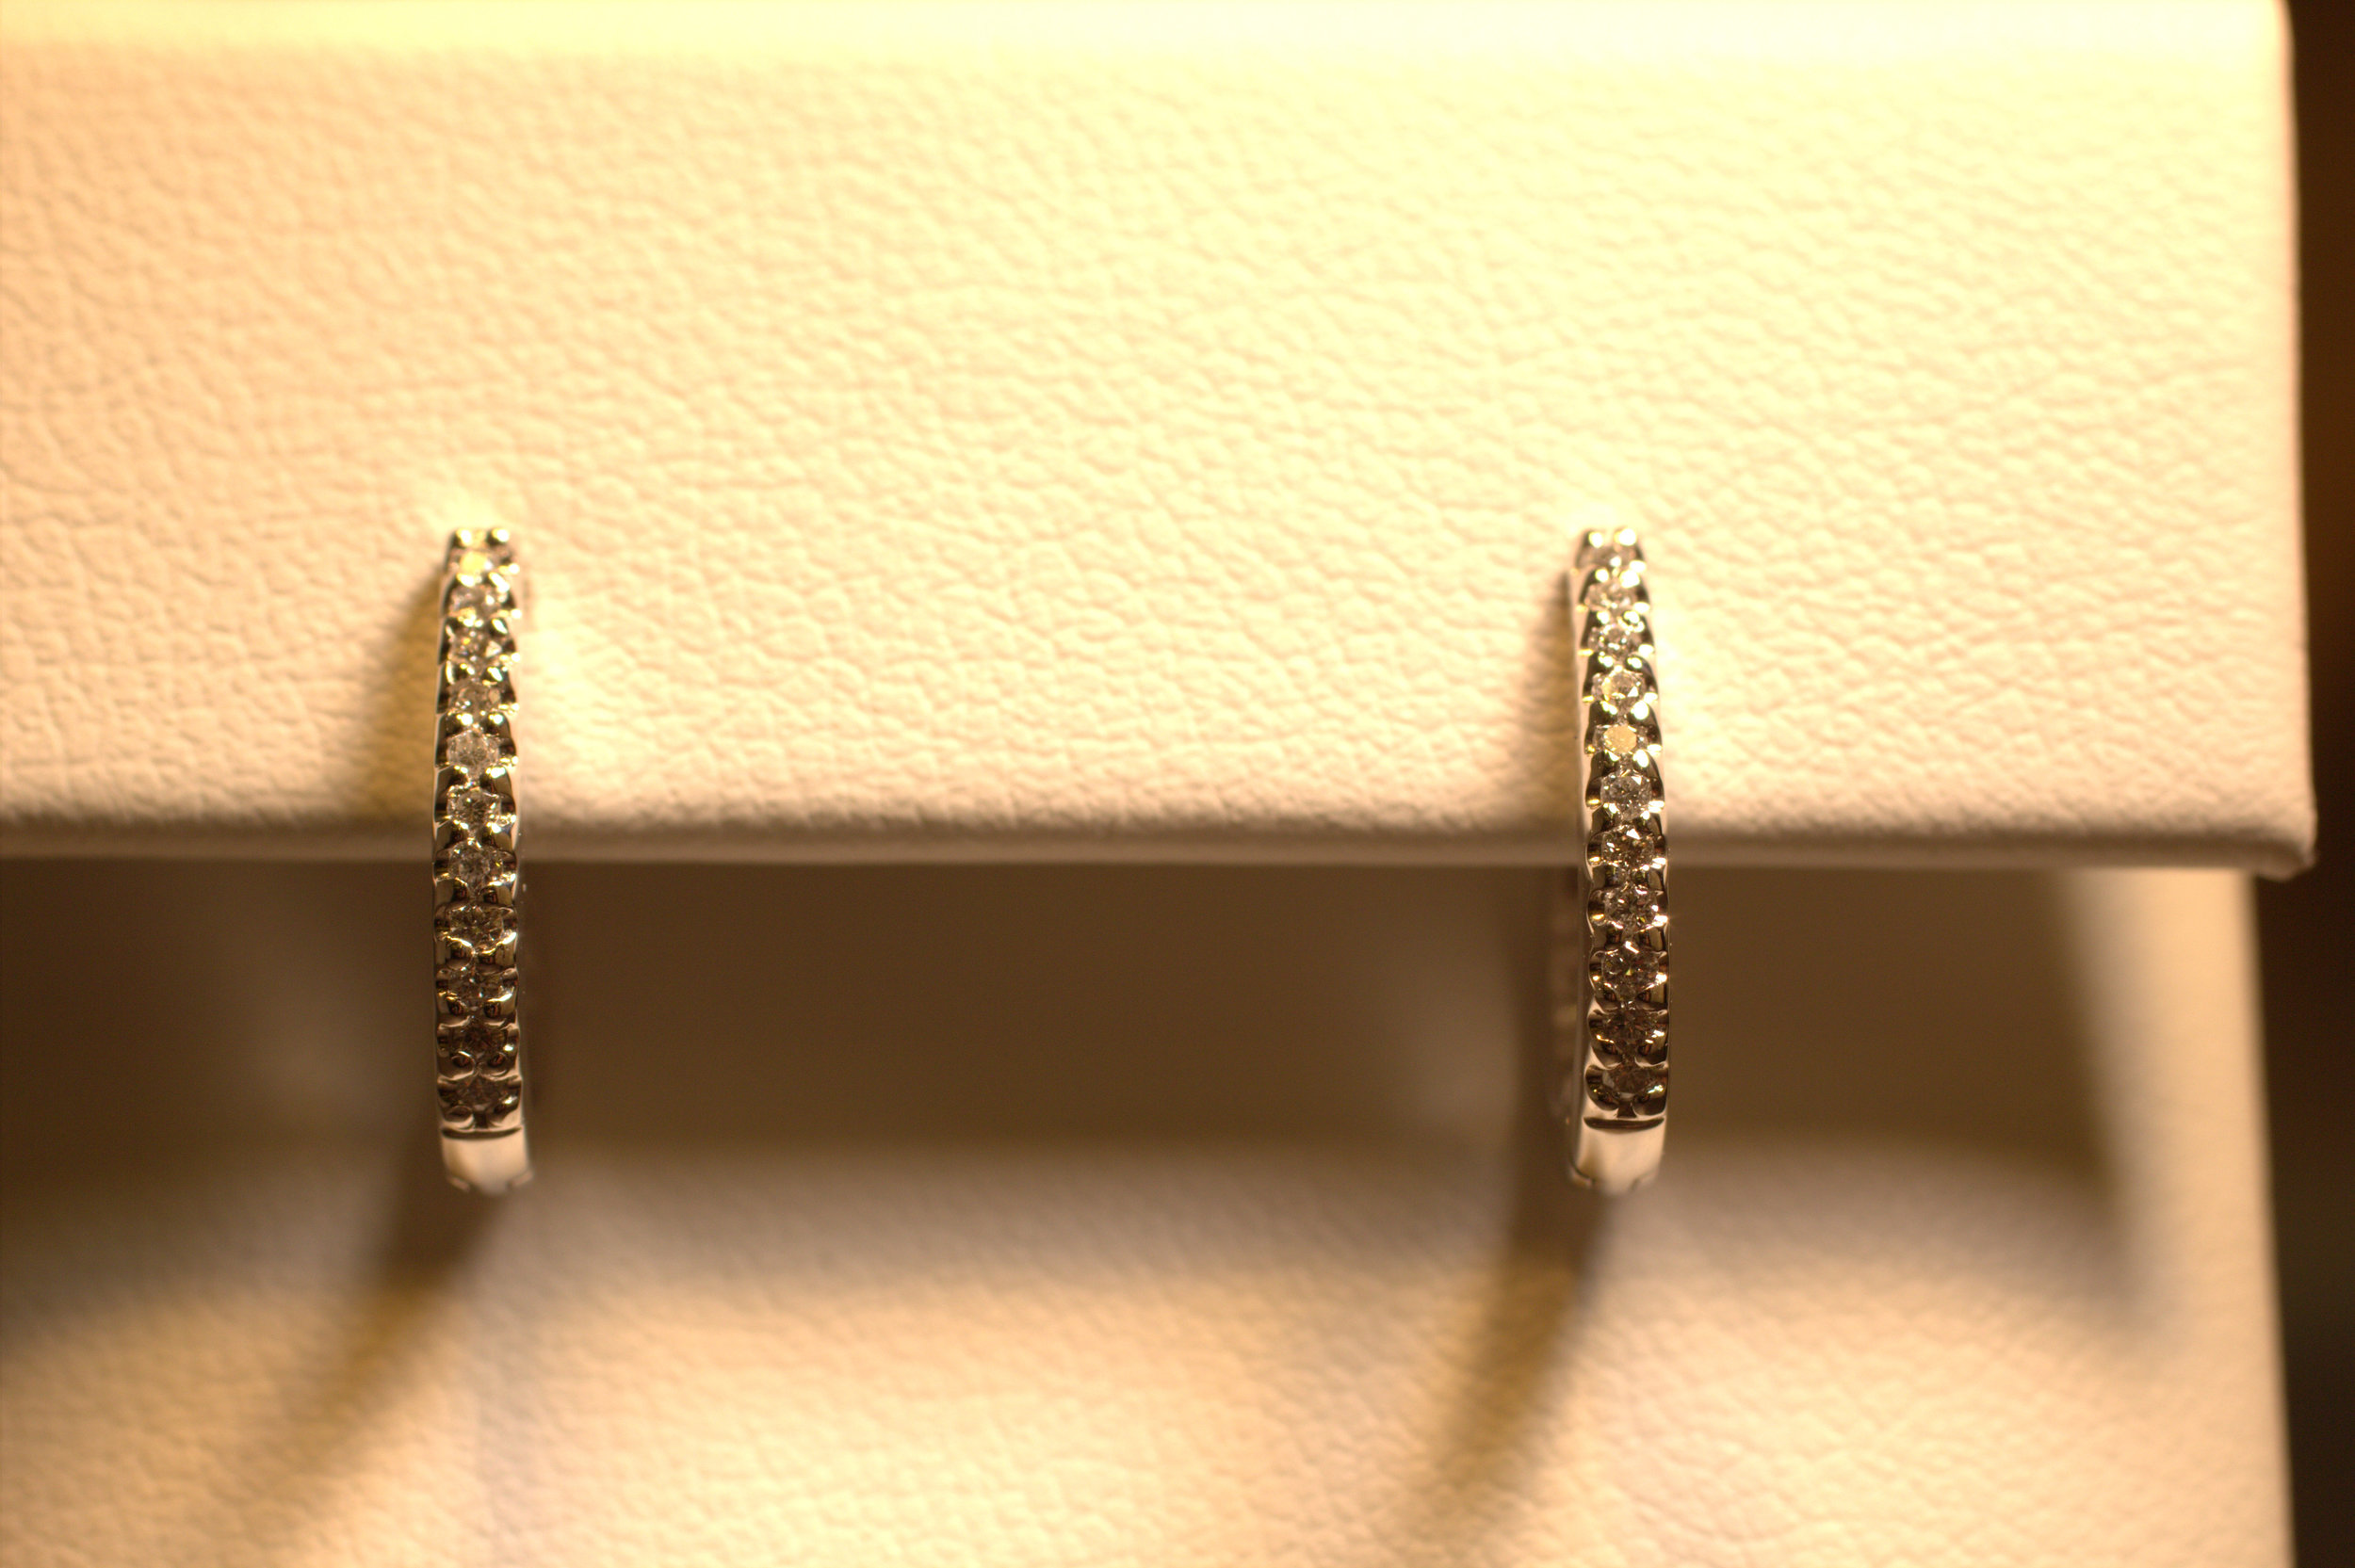 Shared prong diamond hoop earrings. White gold and bright white diamonds, very eye catching.   $750 - $1500